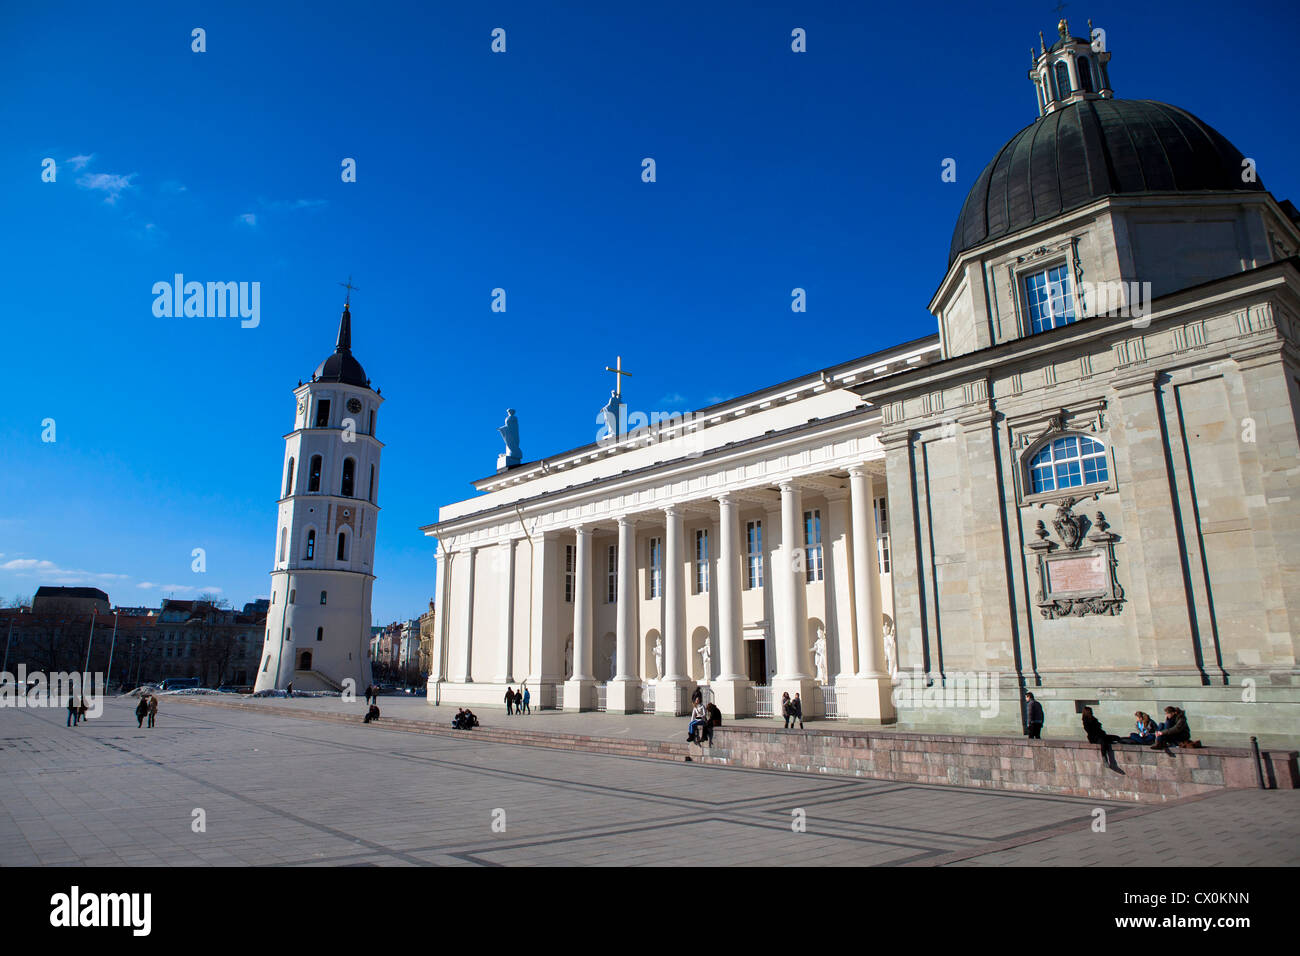 Cathedral square Vilnius Lithuania - Stock Image